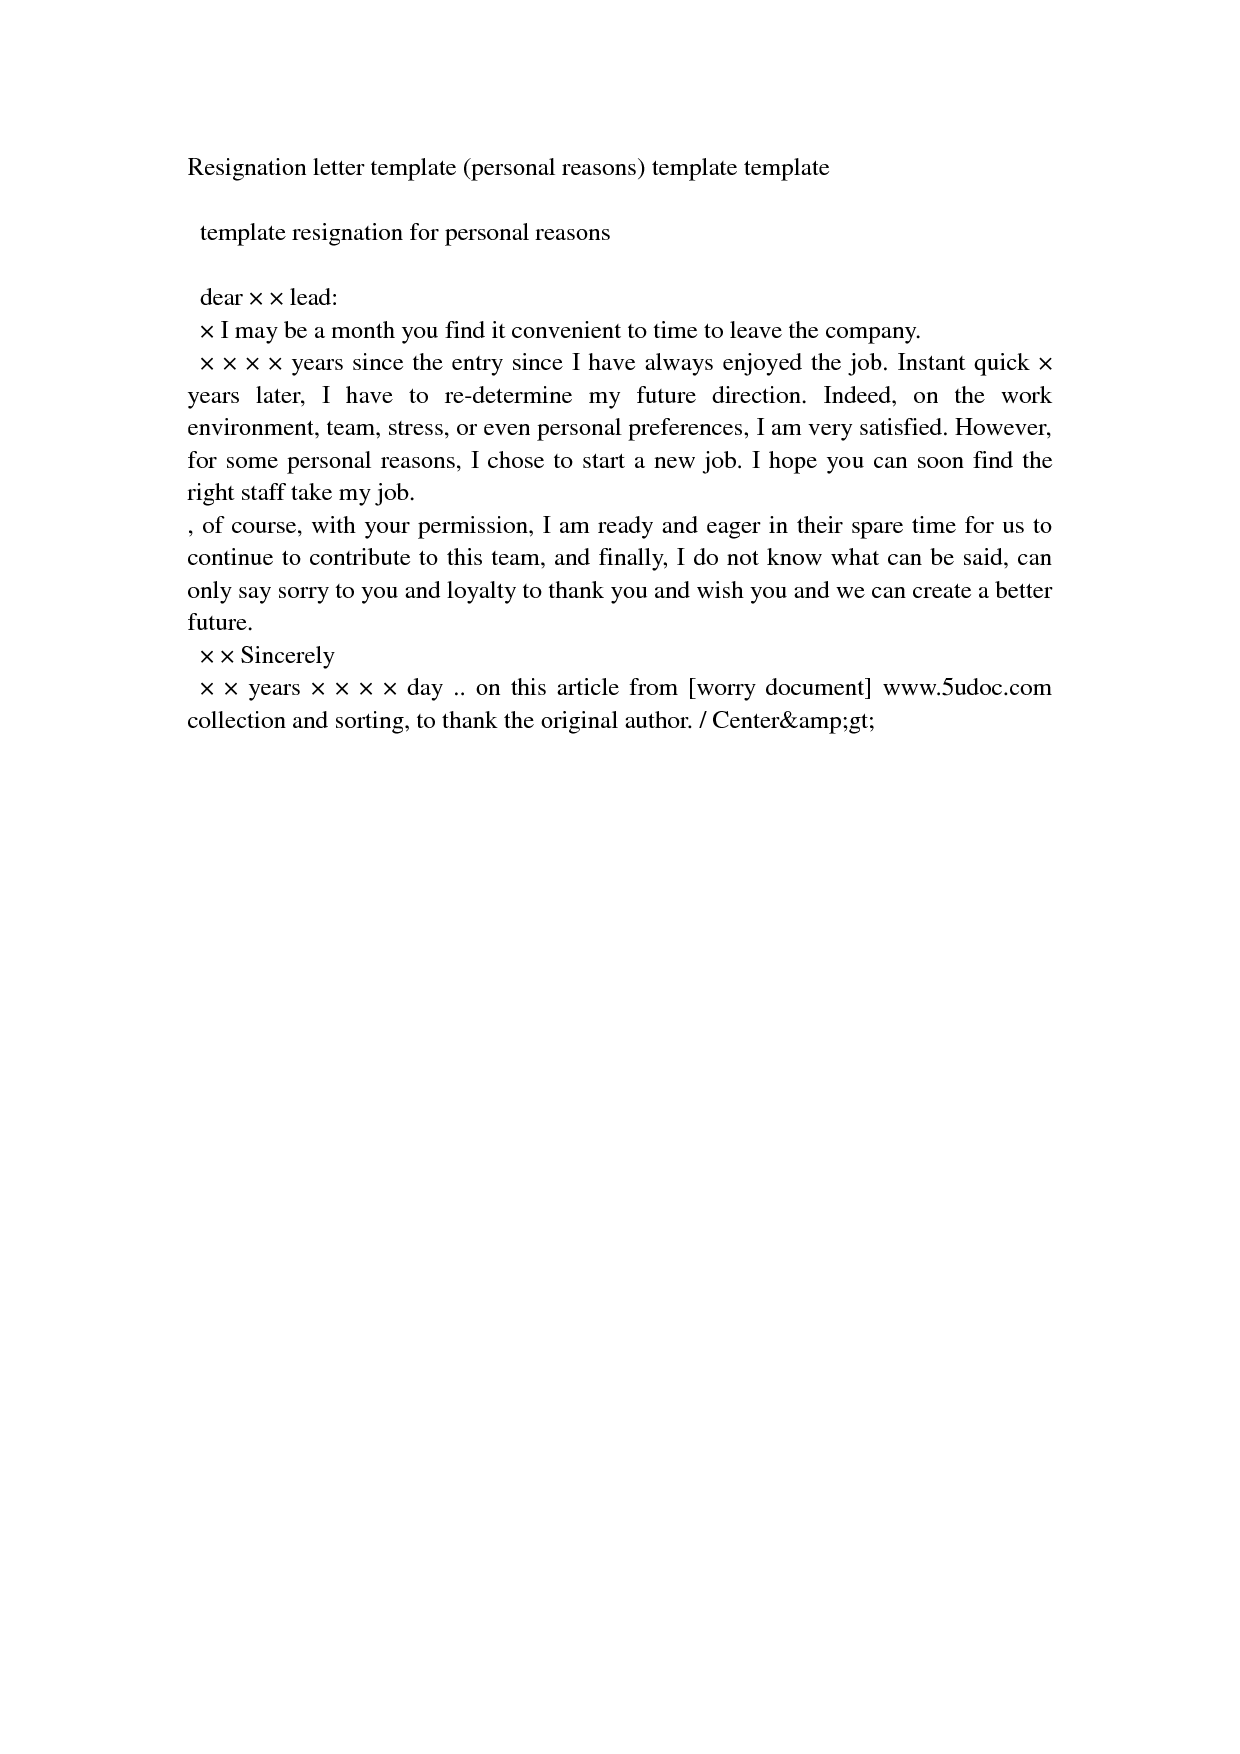 Resign Letter For PersonalWriting A Letter Of Resignation Email ...